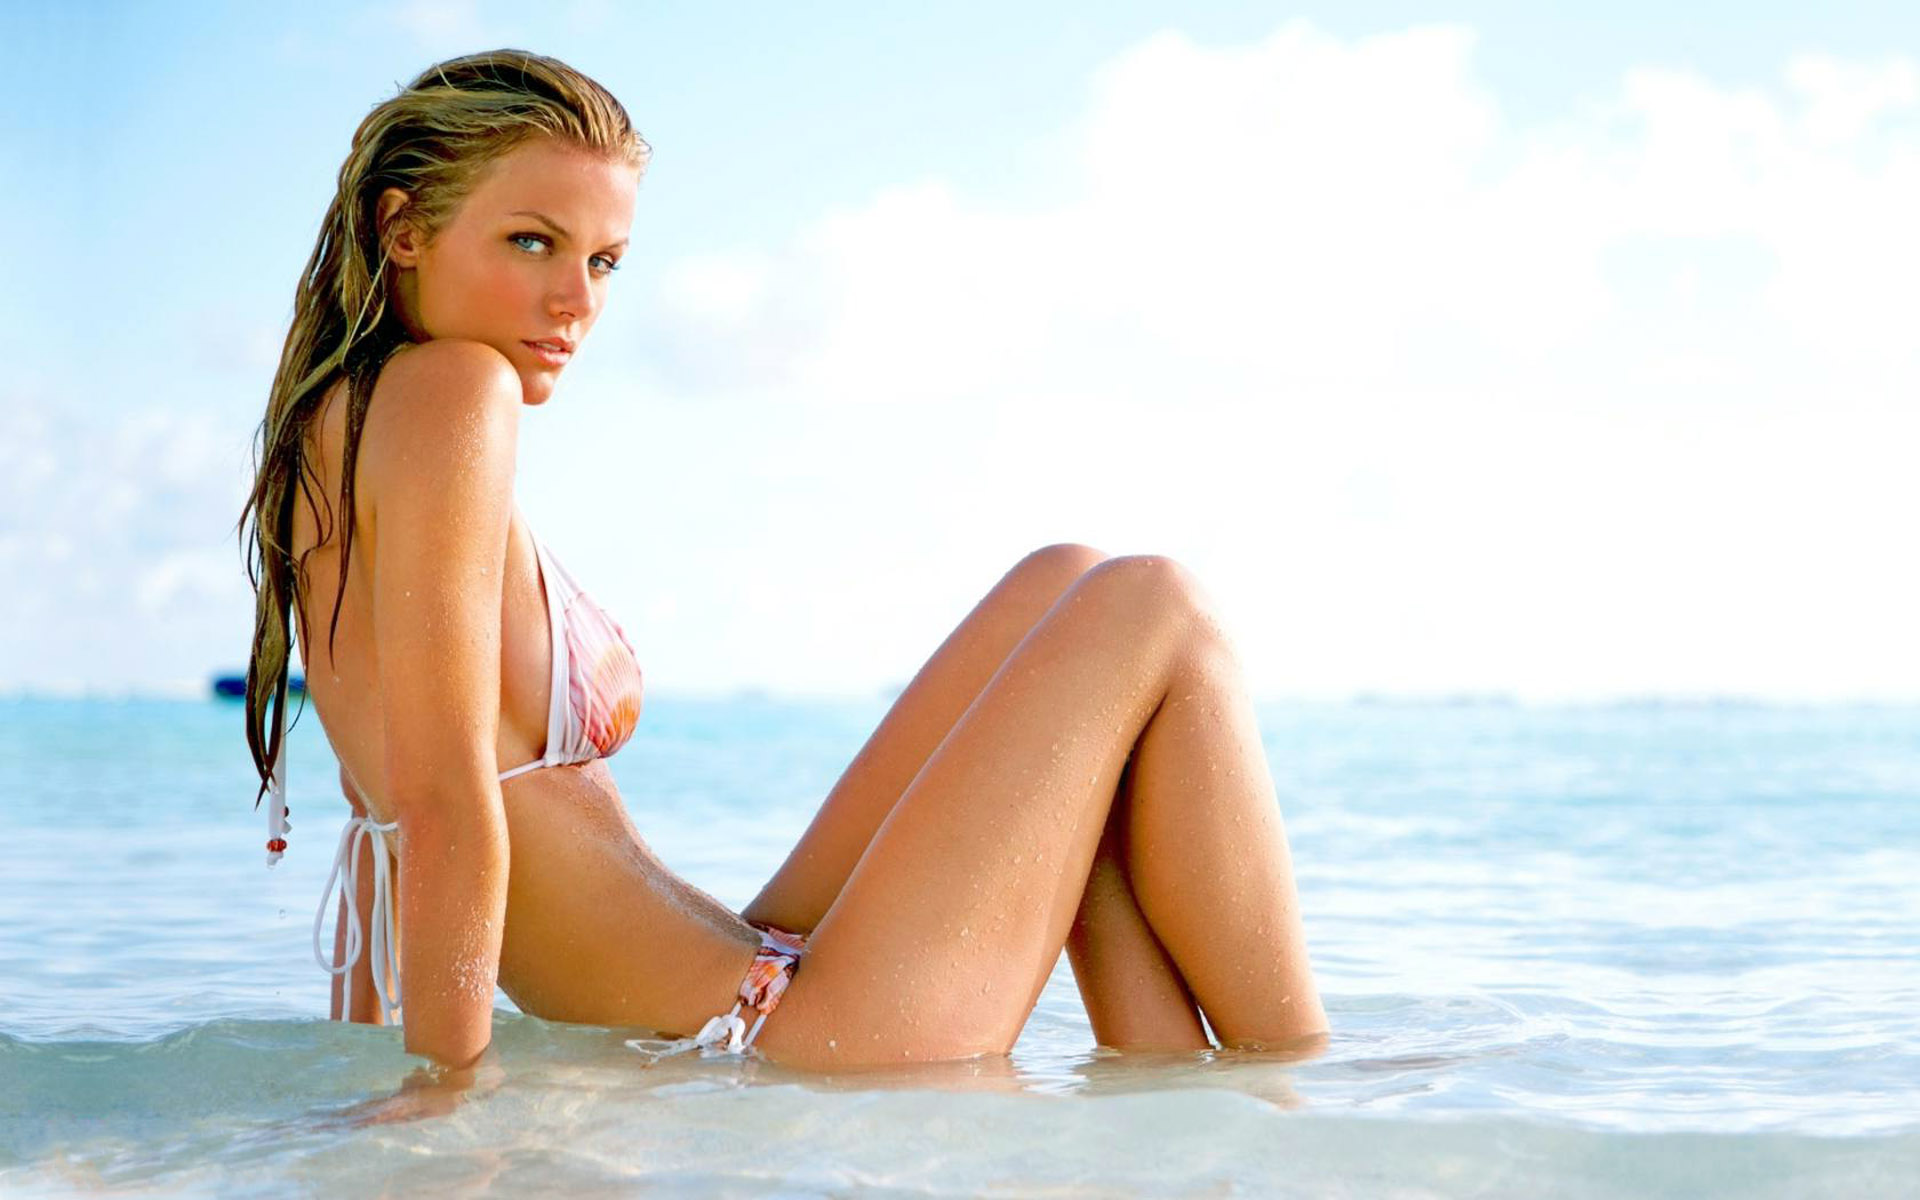 brooklyn-decker-wallpaper-hd